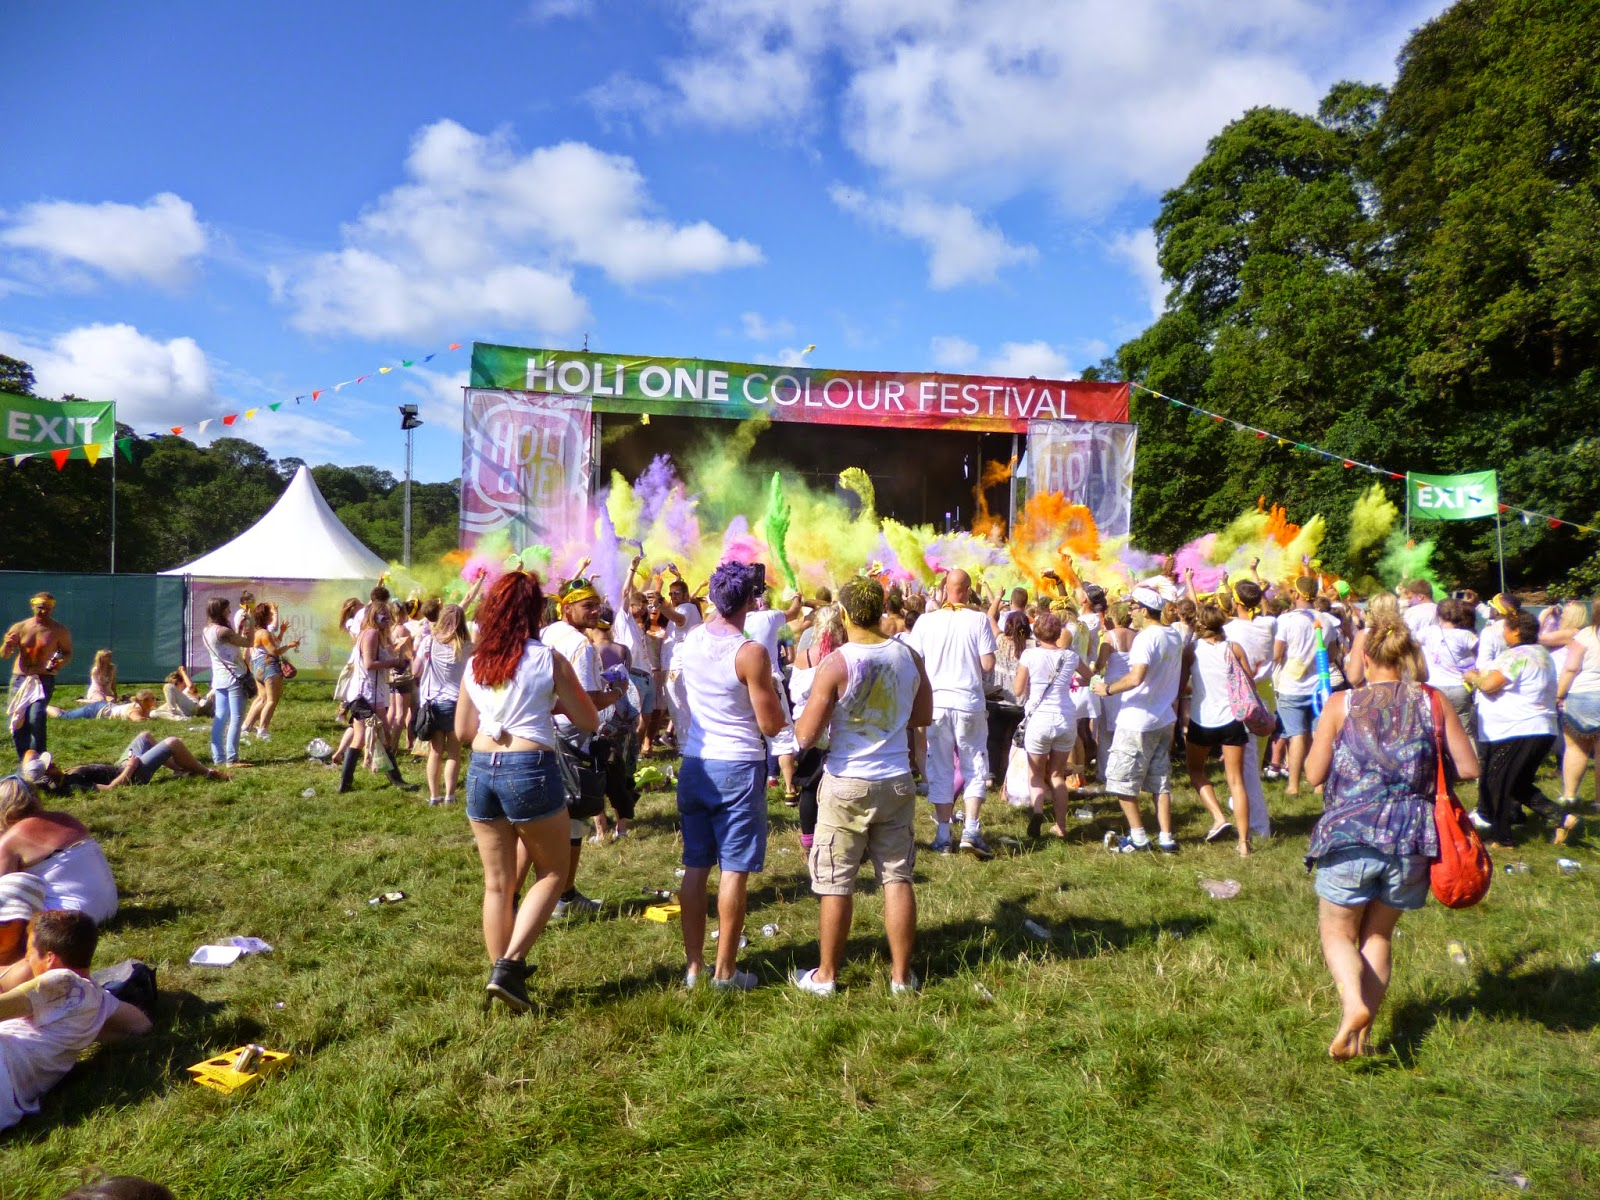 HOLI-ONE-colour-festival-plymouth